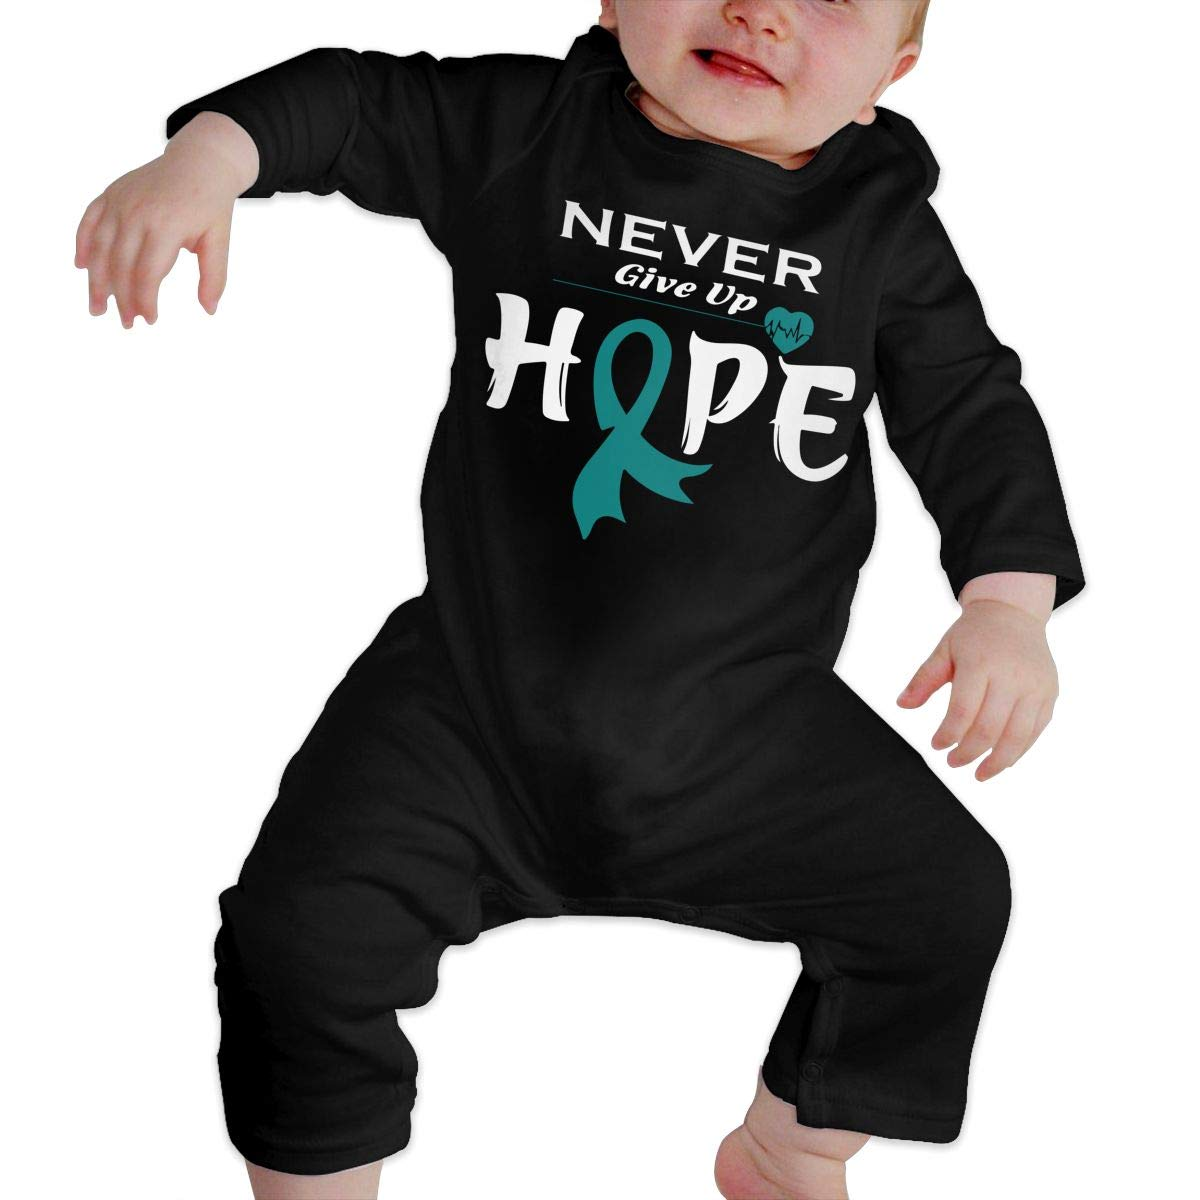 Vy98pu/& Infant Baby Boy Girl Ovarian Cancer Awareness Long Sleeve Romper Jumpsuit Cute Cotton Bodysuit Outfits Clothes